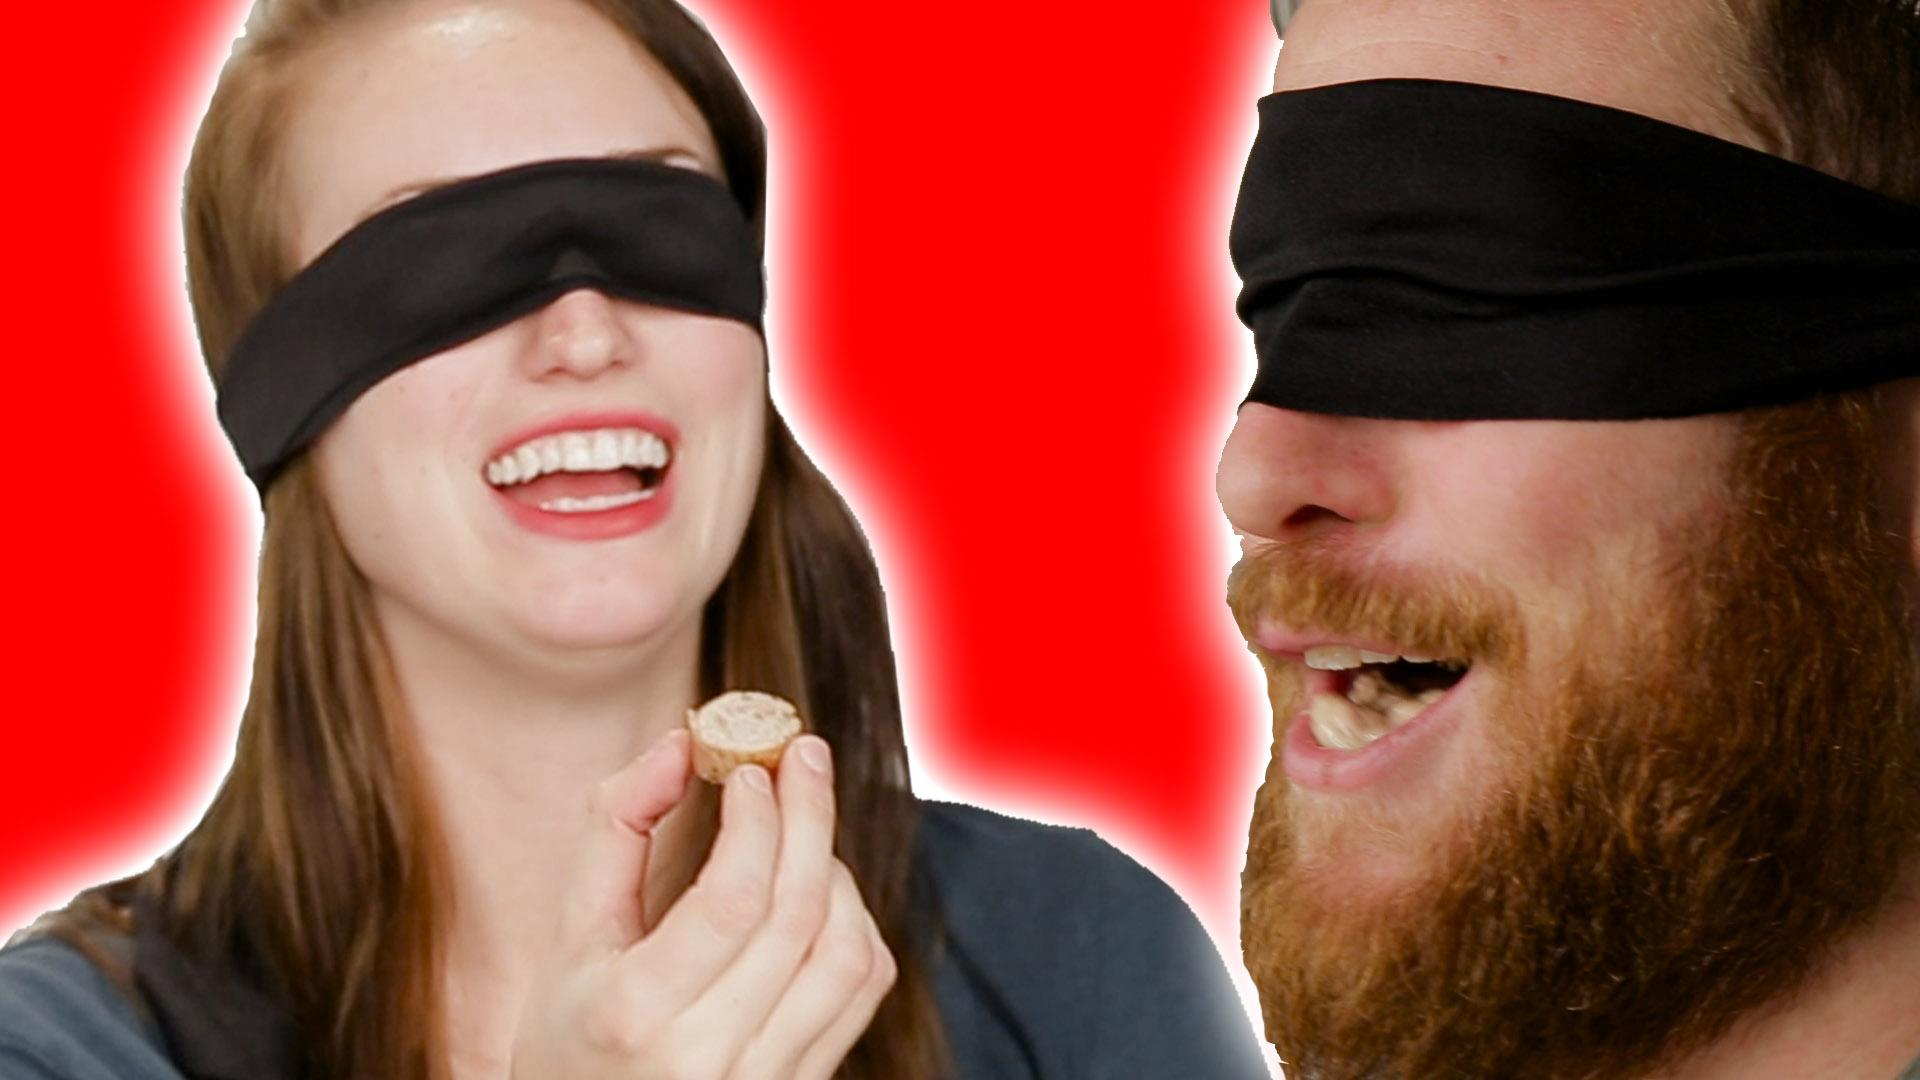 Blindfold multiple facial